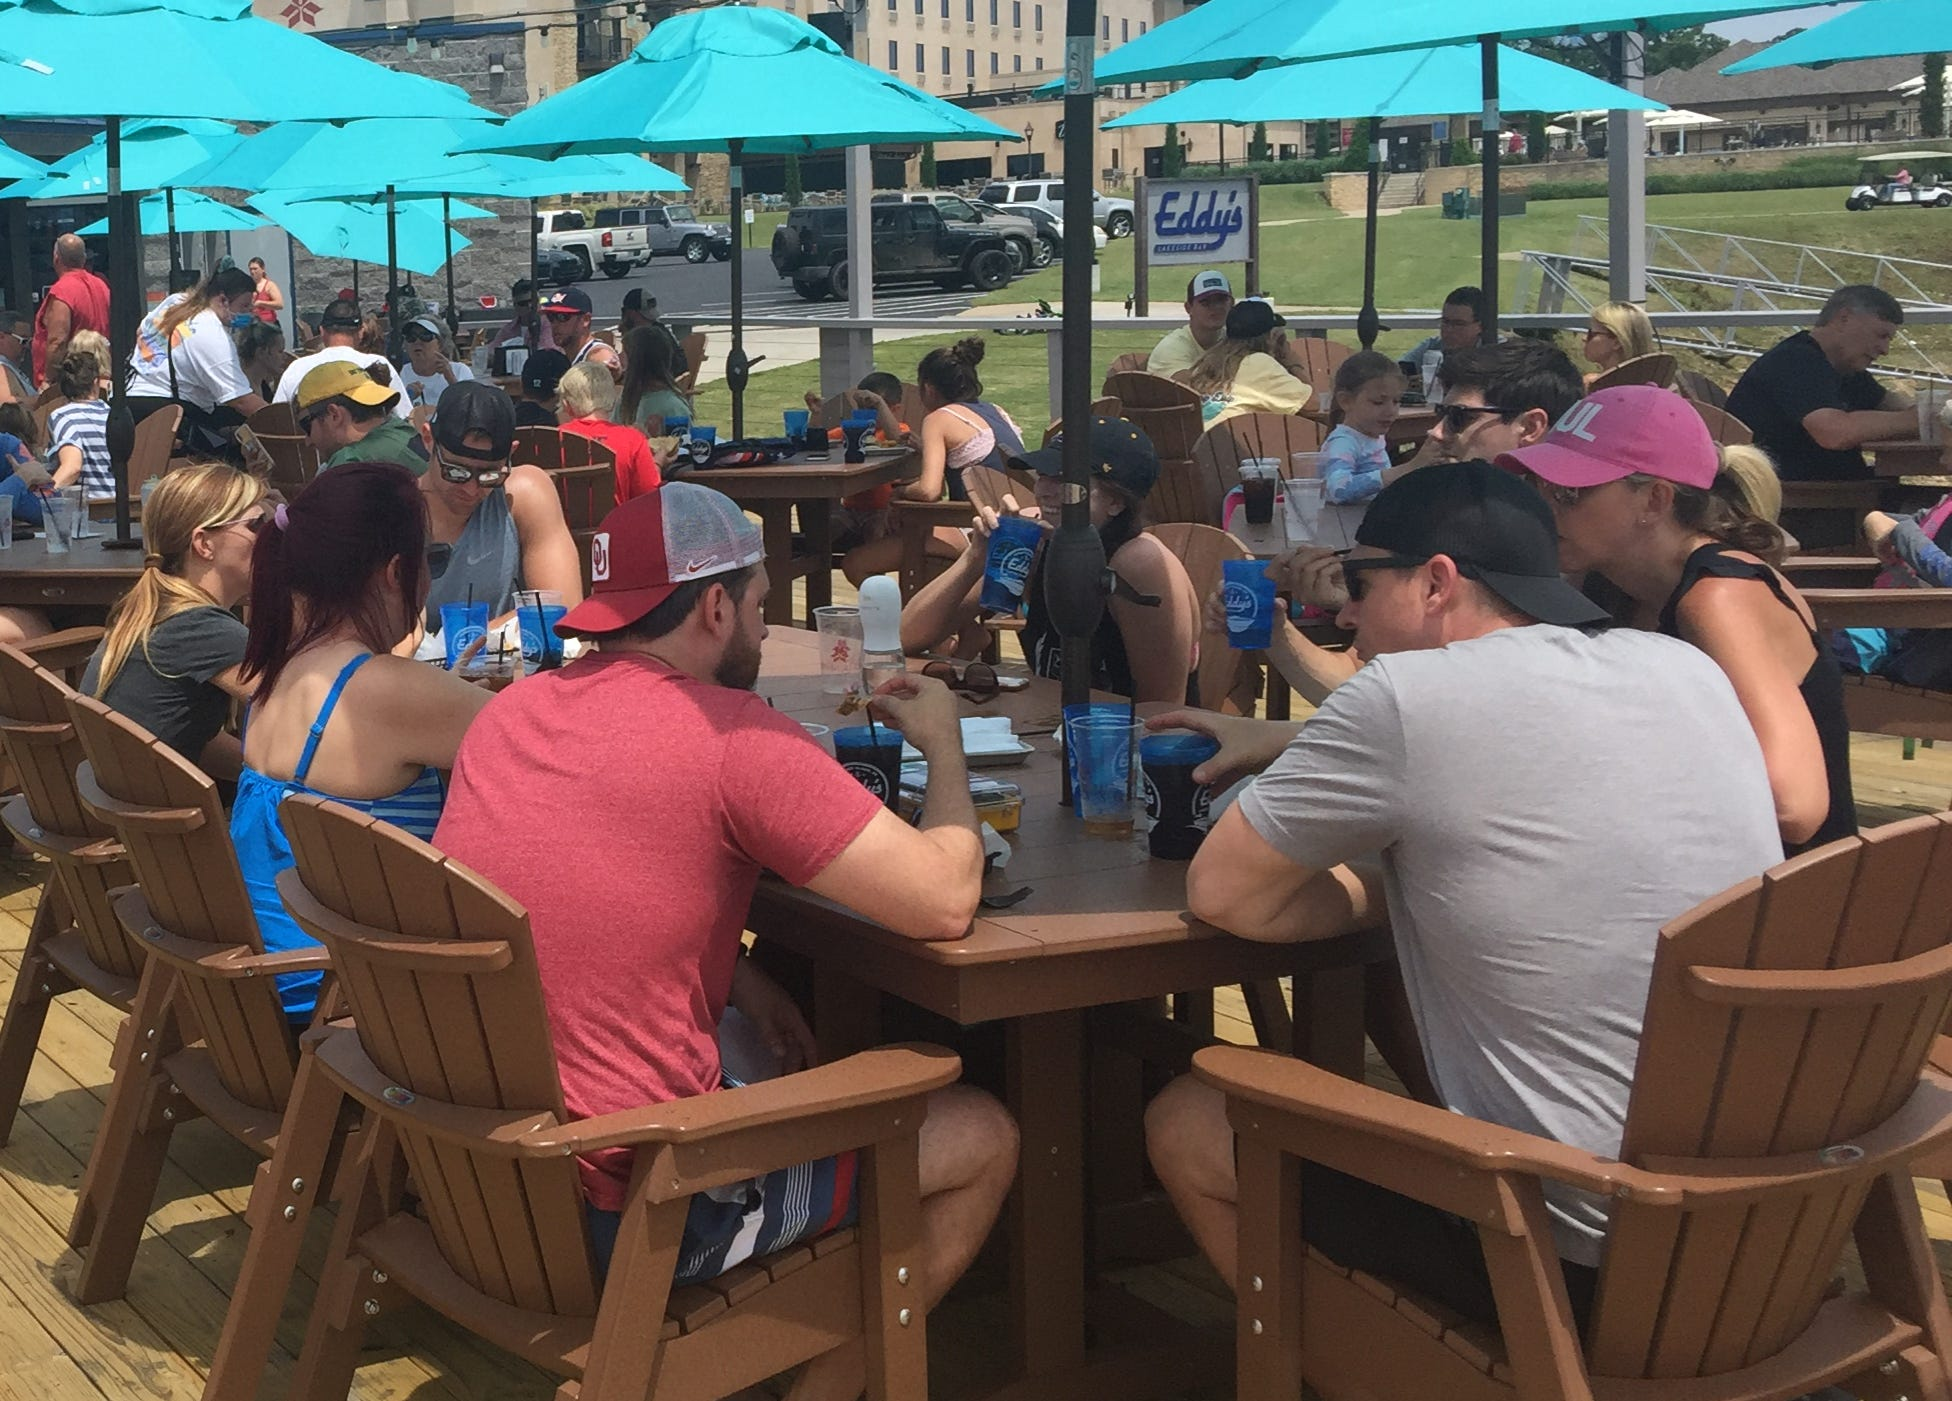 Remember Lake of the Ozarks party pics? Many other places boomed Memorial Day, data show